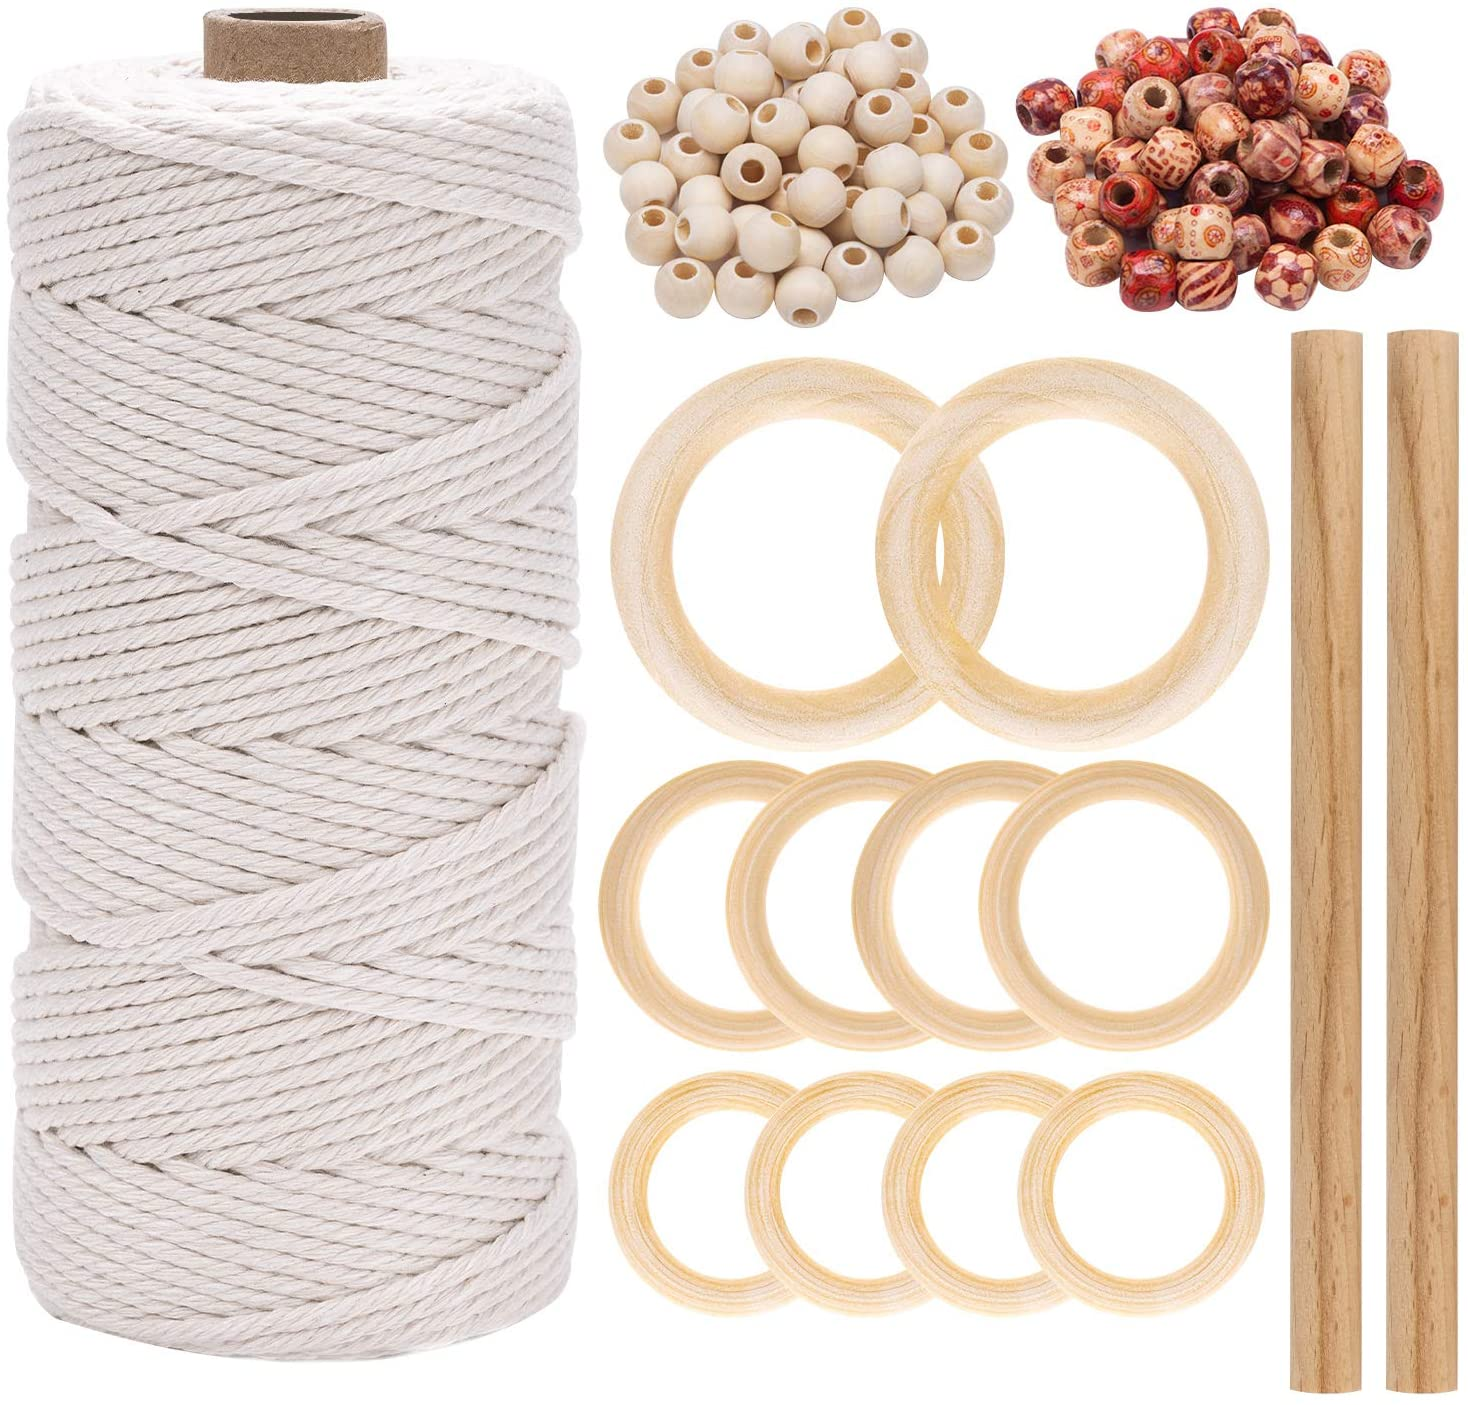 Macrame Cord 3mm x 109 Yards, Natural Macrame Rope Macrame Supplies Cotton Cord Wooden Beads for Wall Hanging, Plant Hangers, Crafts, Knitting, Decorative Projects